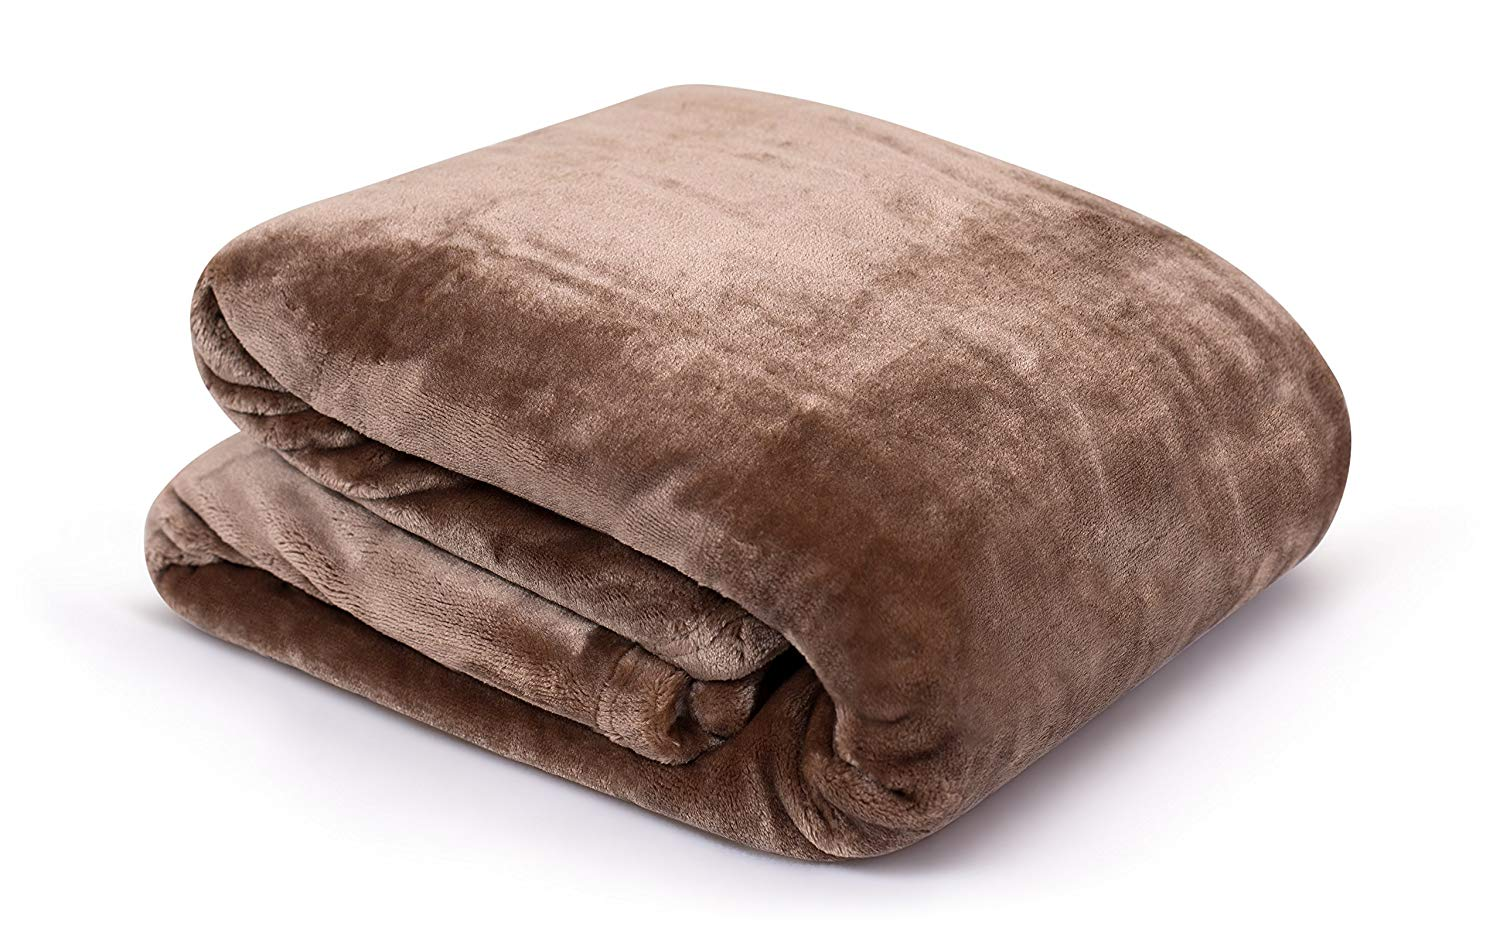 Internet's Best Plush Velvet Mink Throw Blanket | Café (Brown) | Thick Ultra Soft Couch Blanket | Warm Sofa Throw | 100% Microfiber Polyester | Easy Travel | Bed | 50 x 60